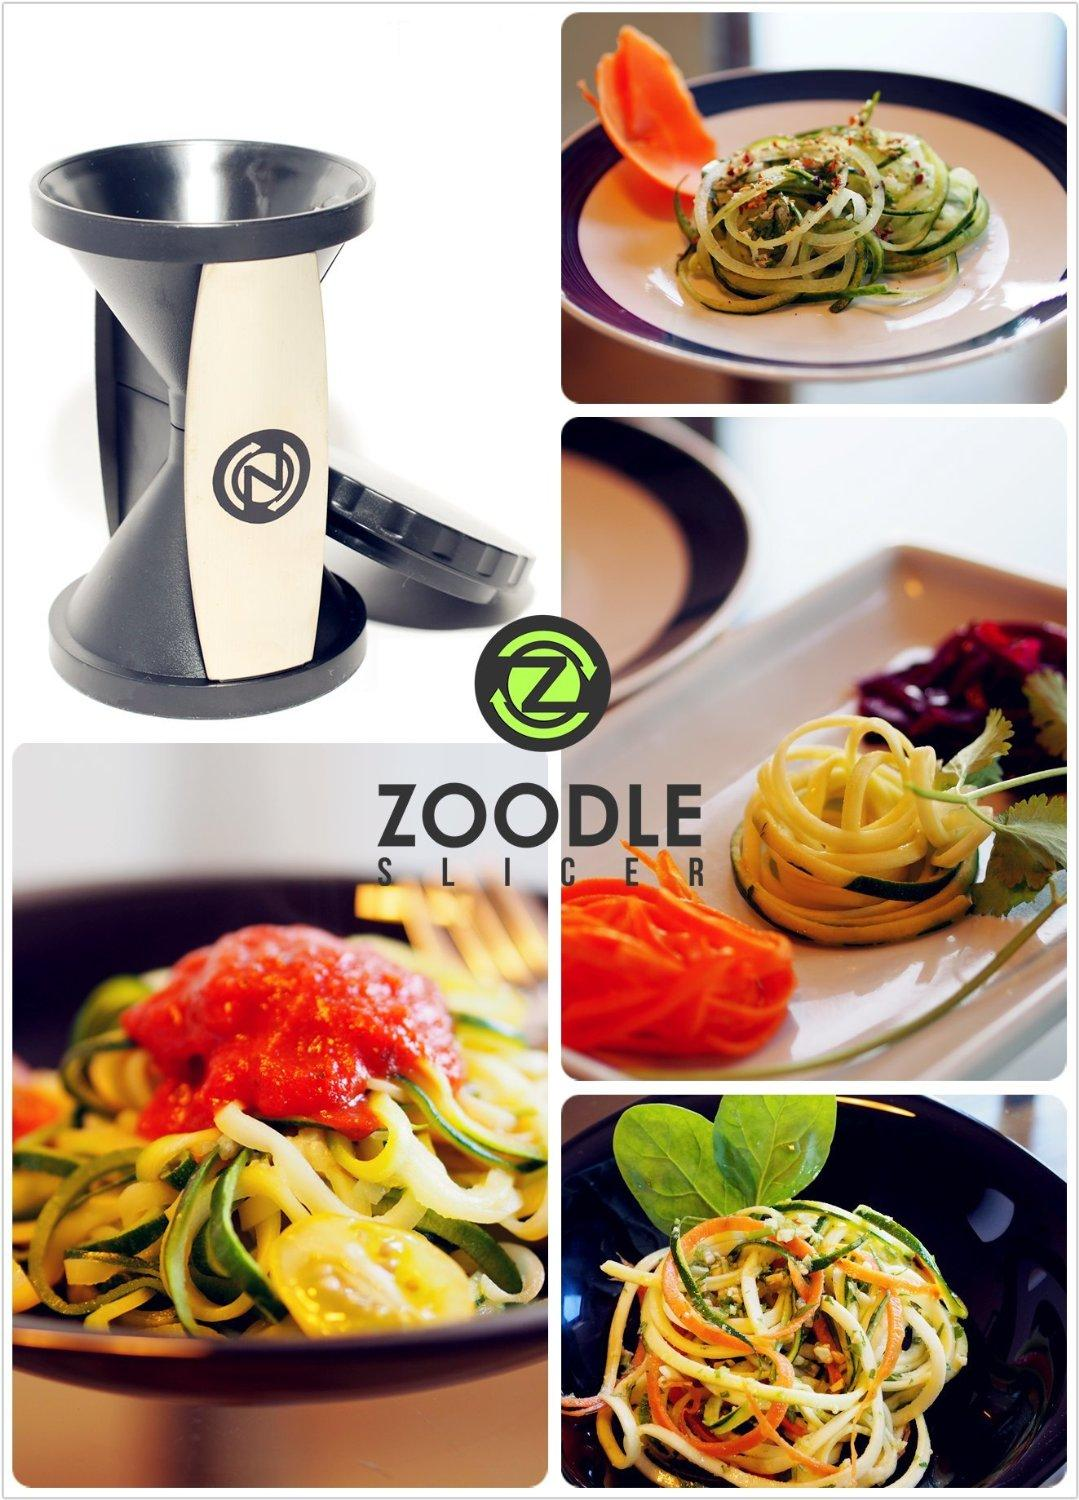 THE ORIGINAL ZOODLE SLICER - Premium Vegetable Spiralizer, Spiral Slicer, Zucchini Noodle Pasta Spaghetti Maker